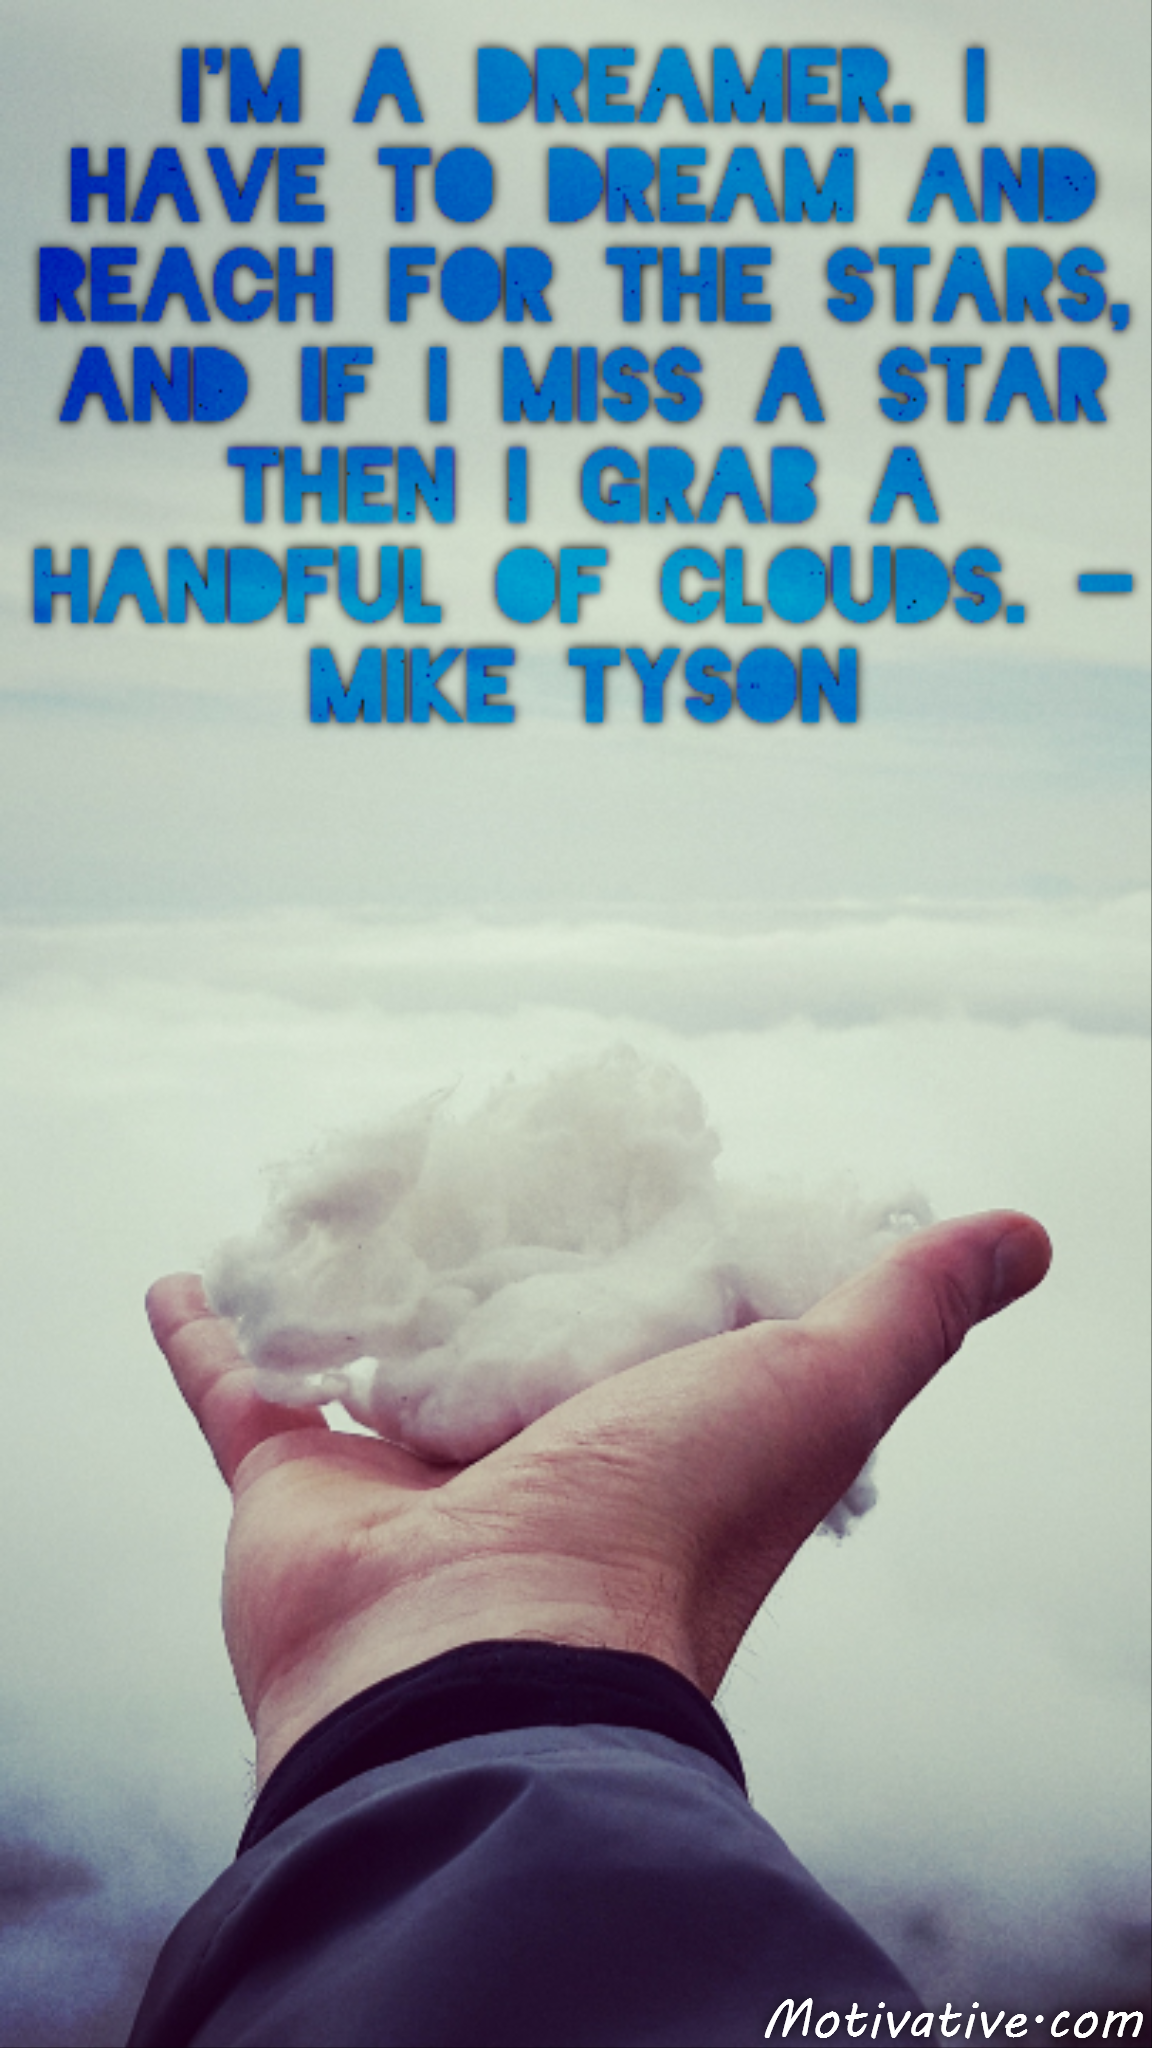 Reach For Clouds >> I M A Dreamer I Have To Dream And Reach For The Stars And If I